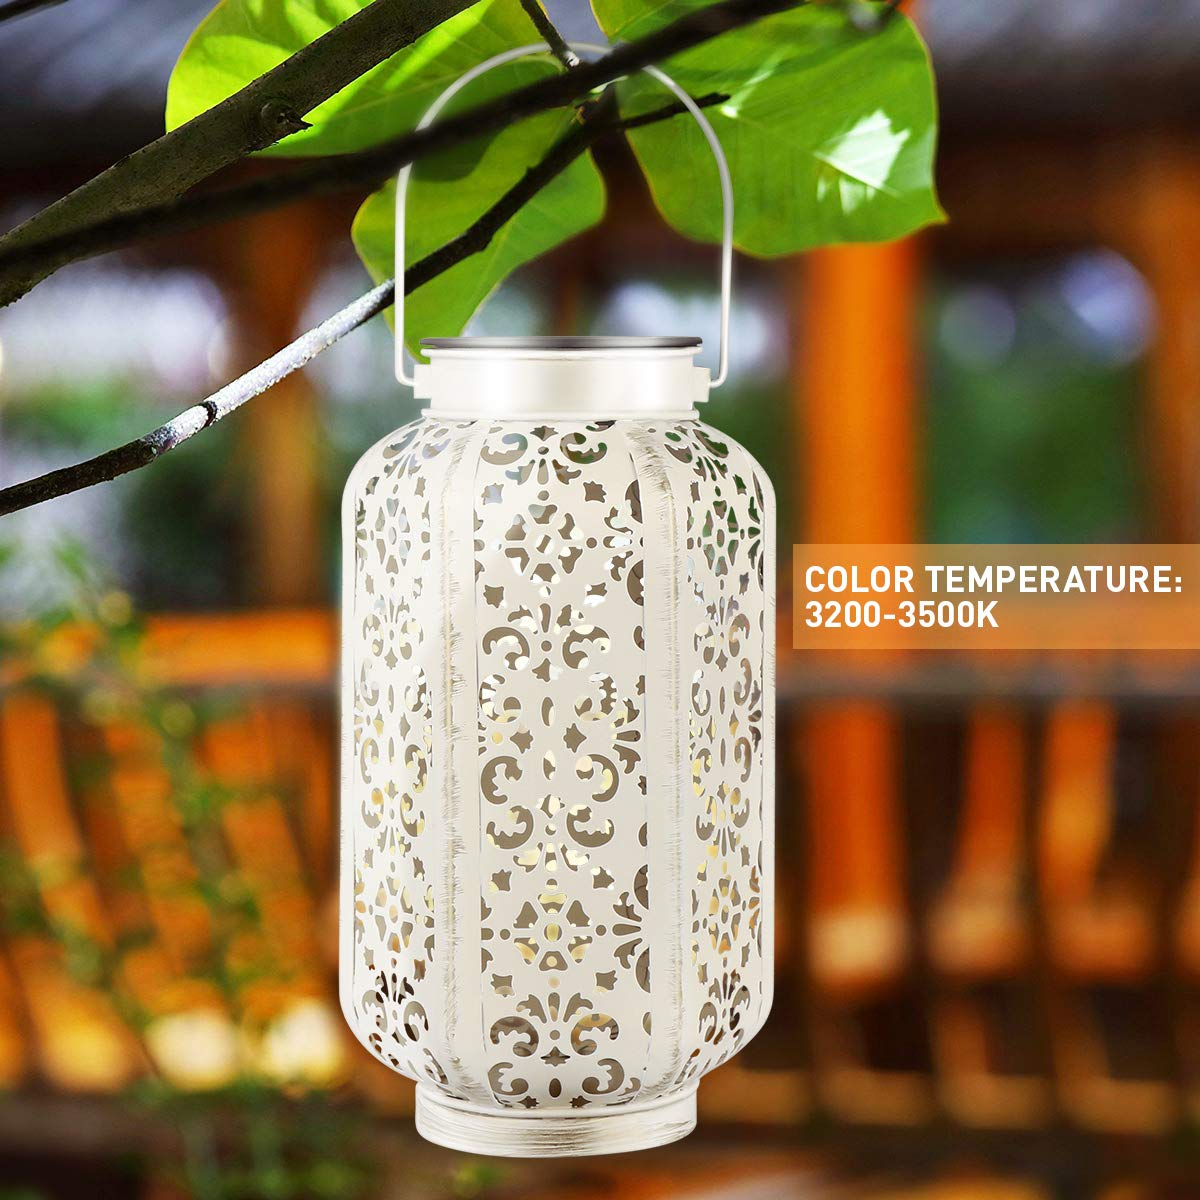 YUNLIGHTS Hanging Solar Lights Outdoor Solar Powered Lantern LED Lanterns Decorative lamp for Garden/Patio/Hallway, Waterproof, 8-10h Working Time, Warm White, 2 Pack by YUNLIGHTS